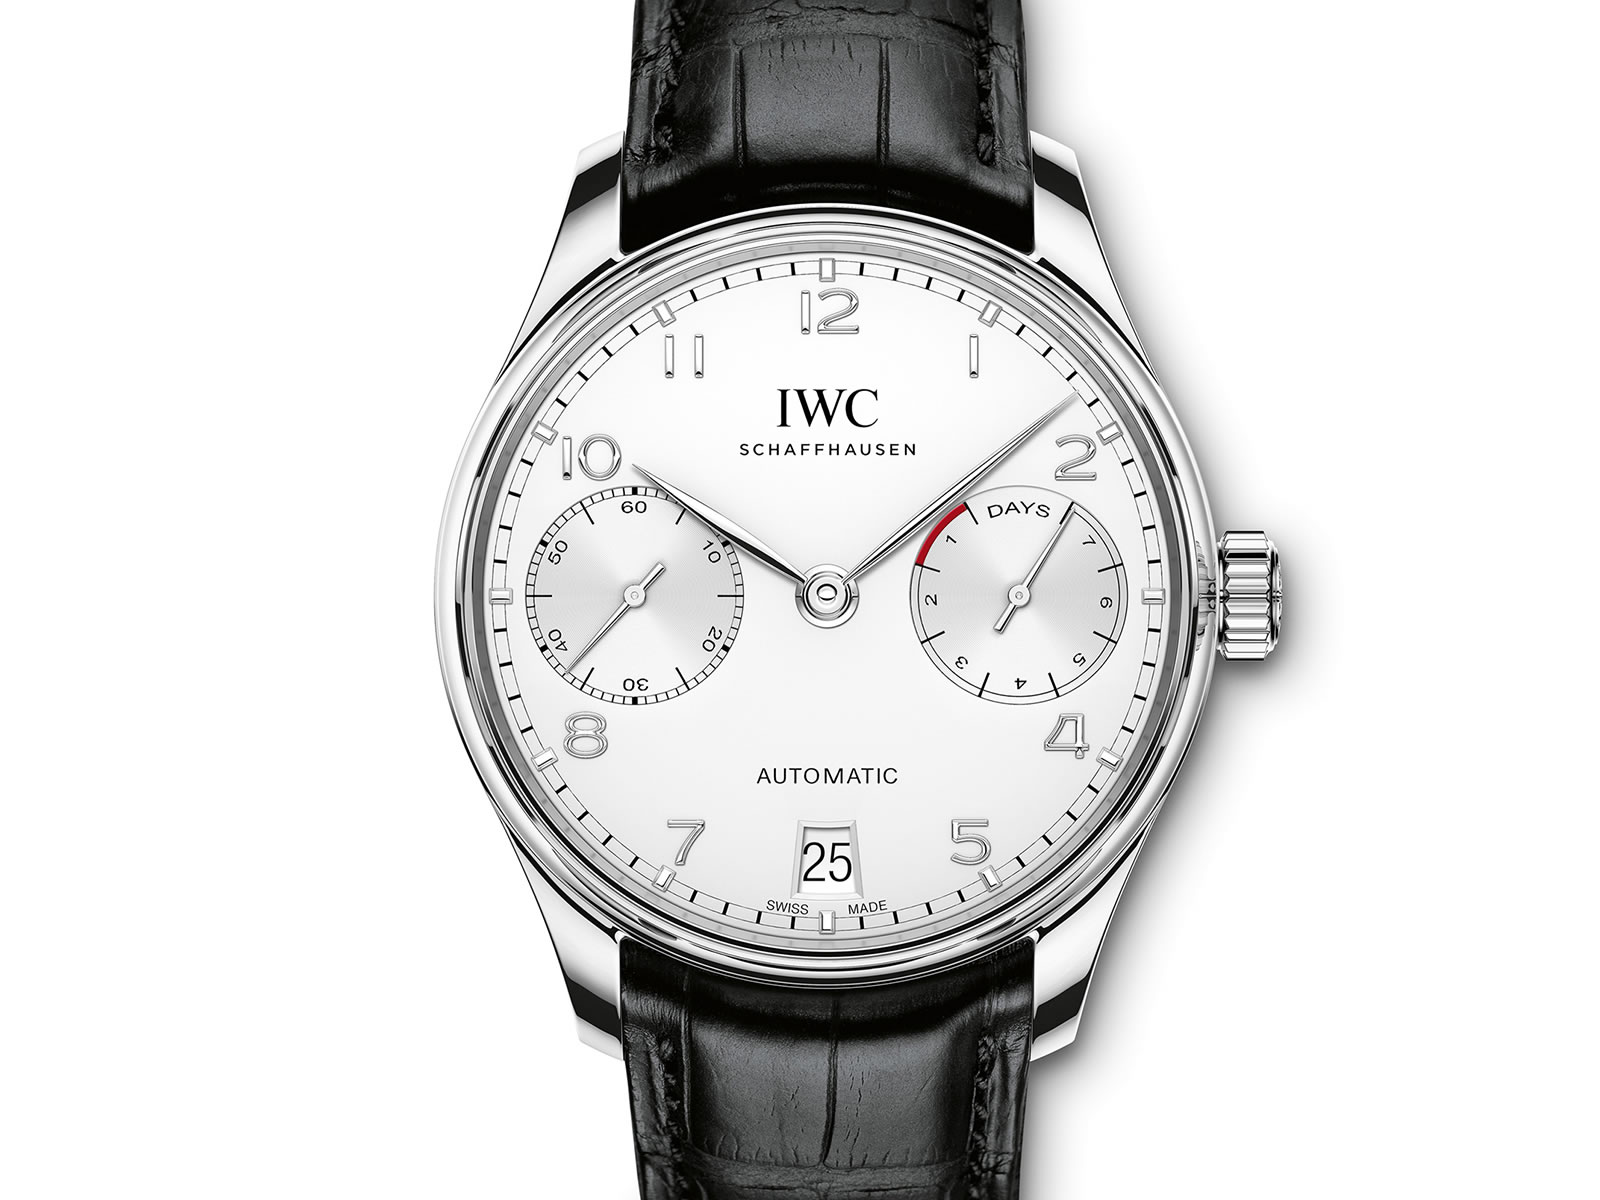 iw500712-iwc-portugieser-automatic-7-days-stainless-steel-1-.jpg